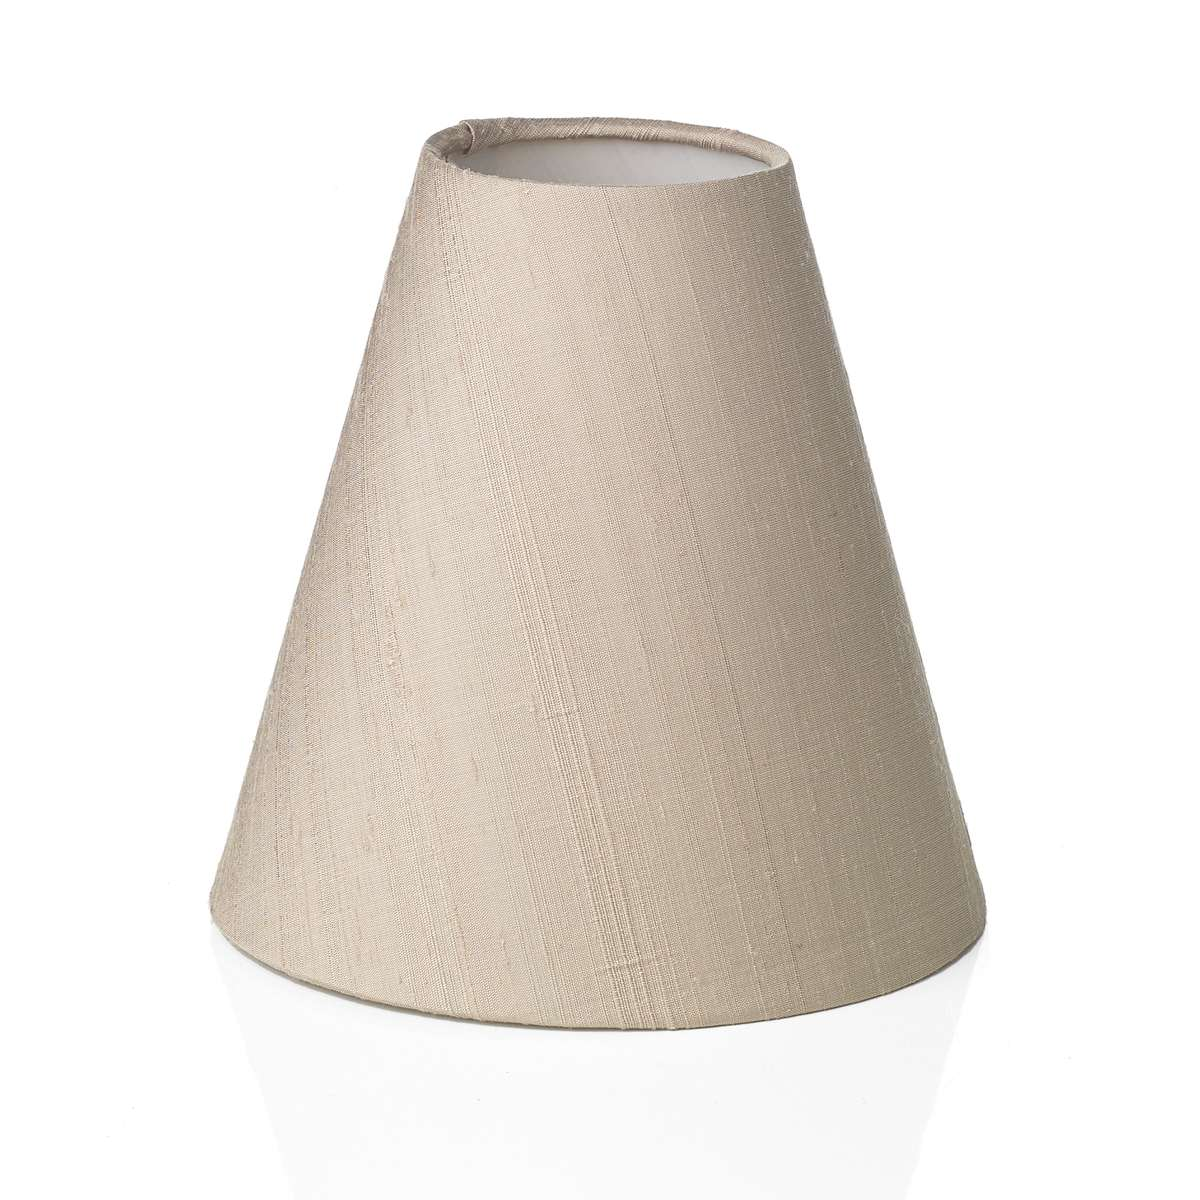 Doreen Small Conical Shade Choose a Colour